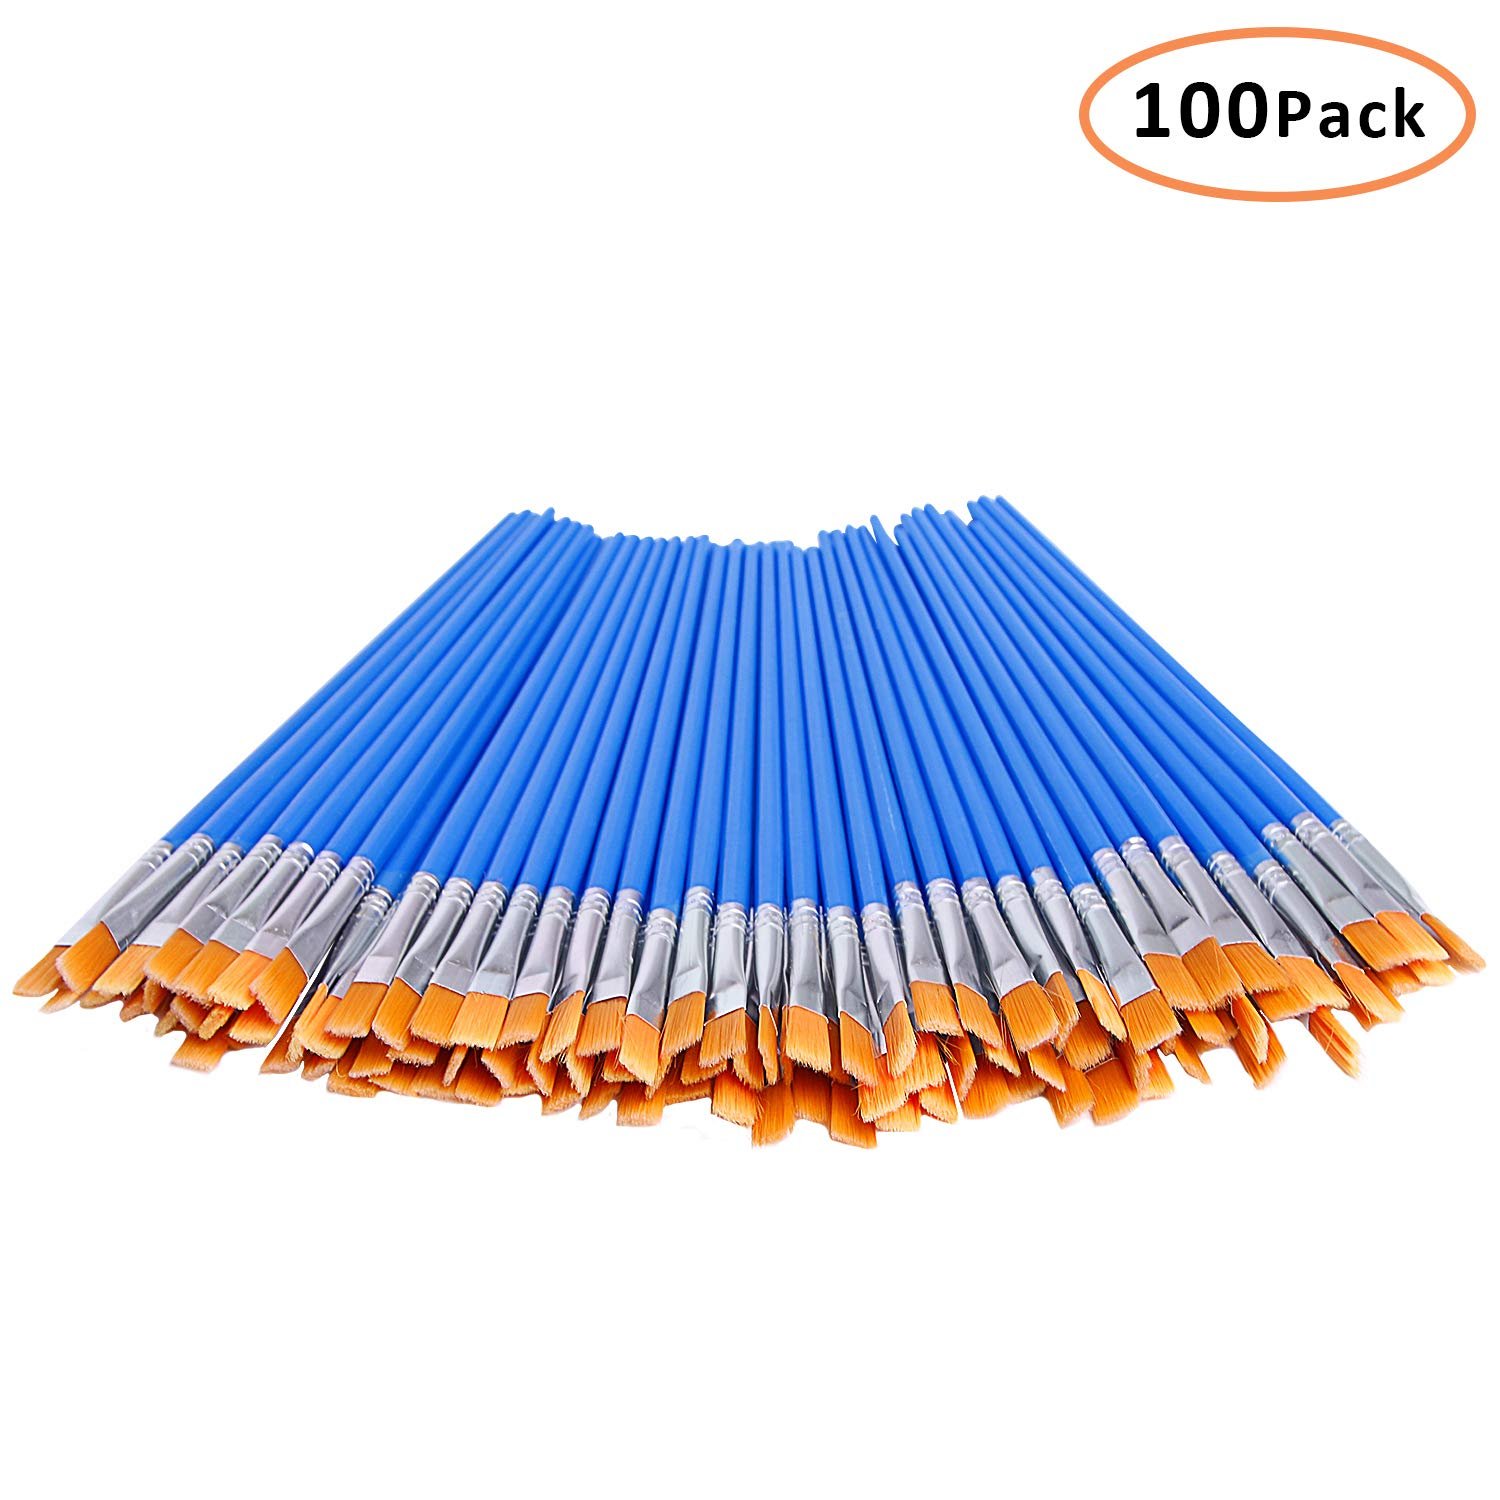 DECYOOL 100 Pcs Flat Paint Brushes,Small Brush Bulk for Detail Painting,Nylon Hair Brushes Acrylic Oil Watercolor Fine Art Painting for Kids,Children,Students,Starter,Teens, Adults, Artist by DECYOOL